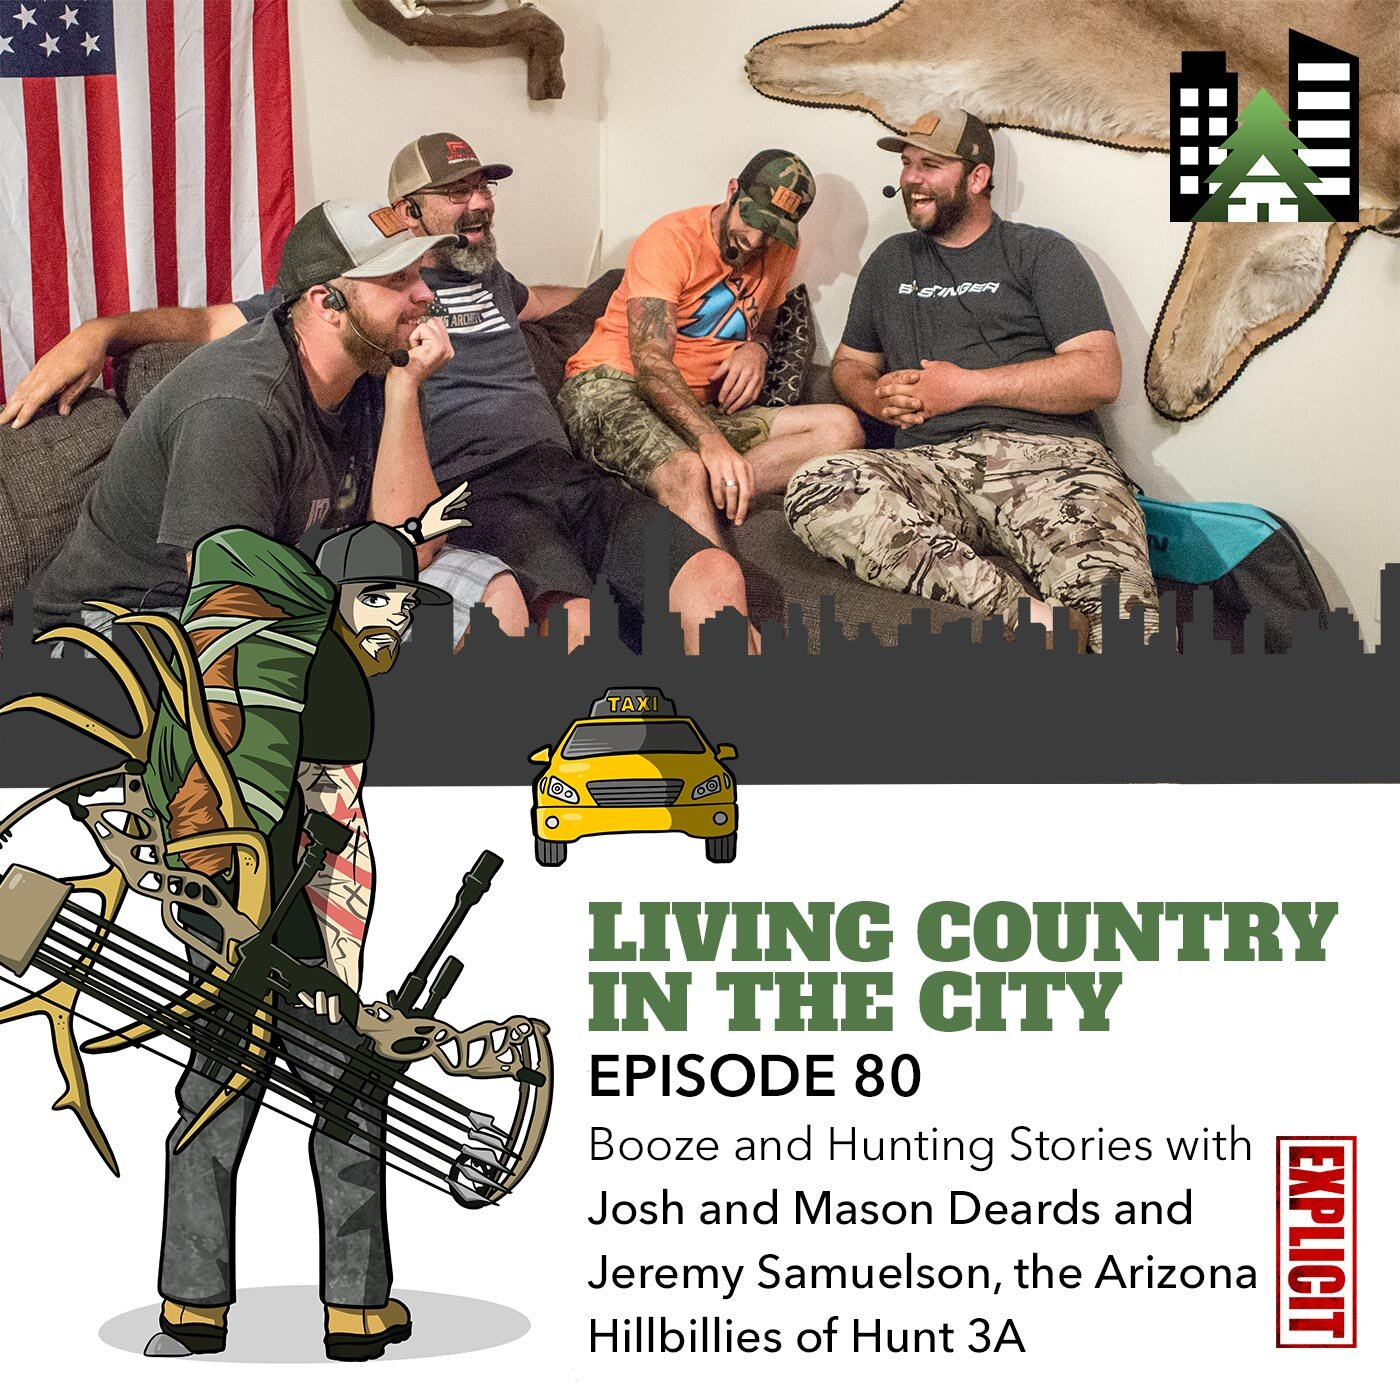 Living Country in the City - Ep 80 - Booze and Hunting Stories with Josh and Mason Deards and Jeremy Samuelson, the Arizona Hillbillies of Hunt 3A